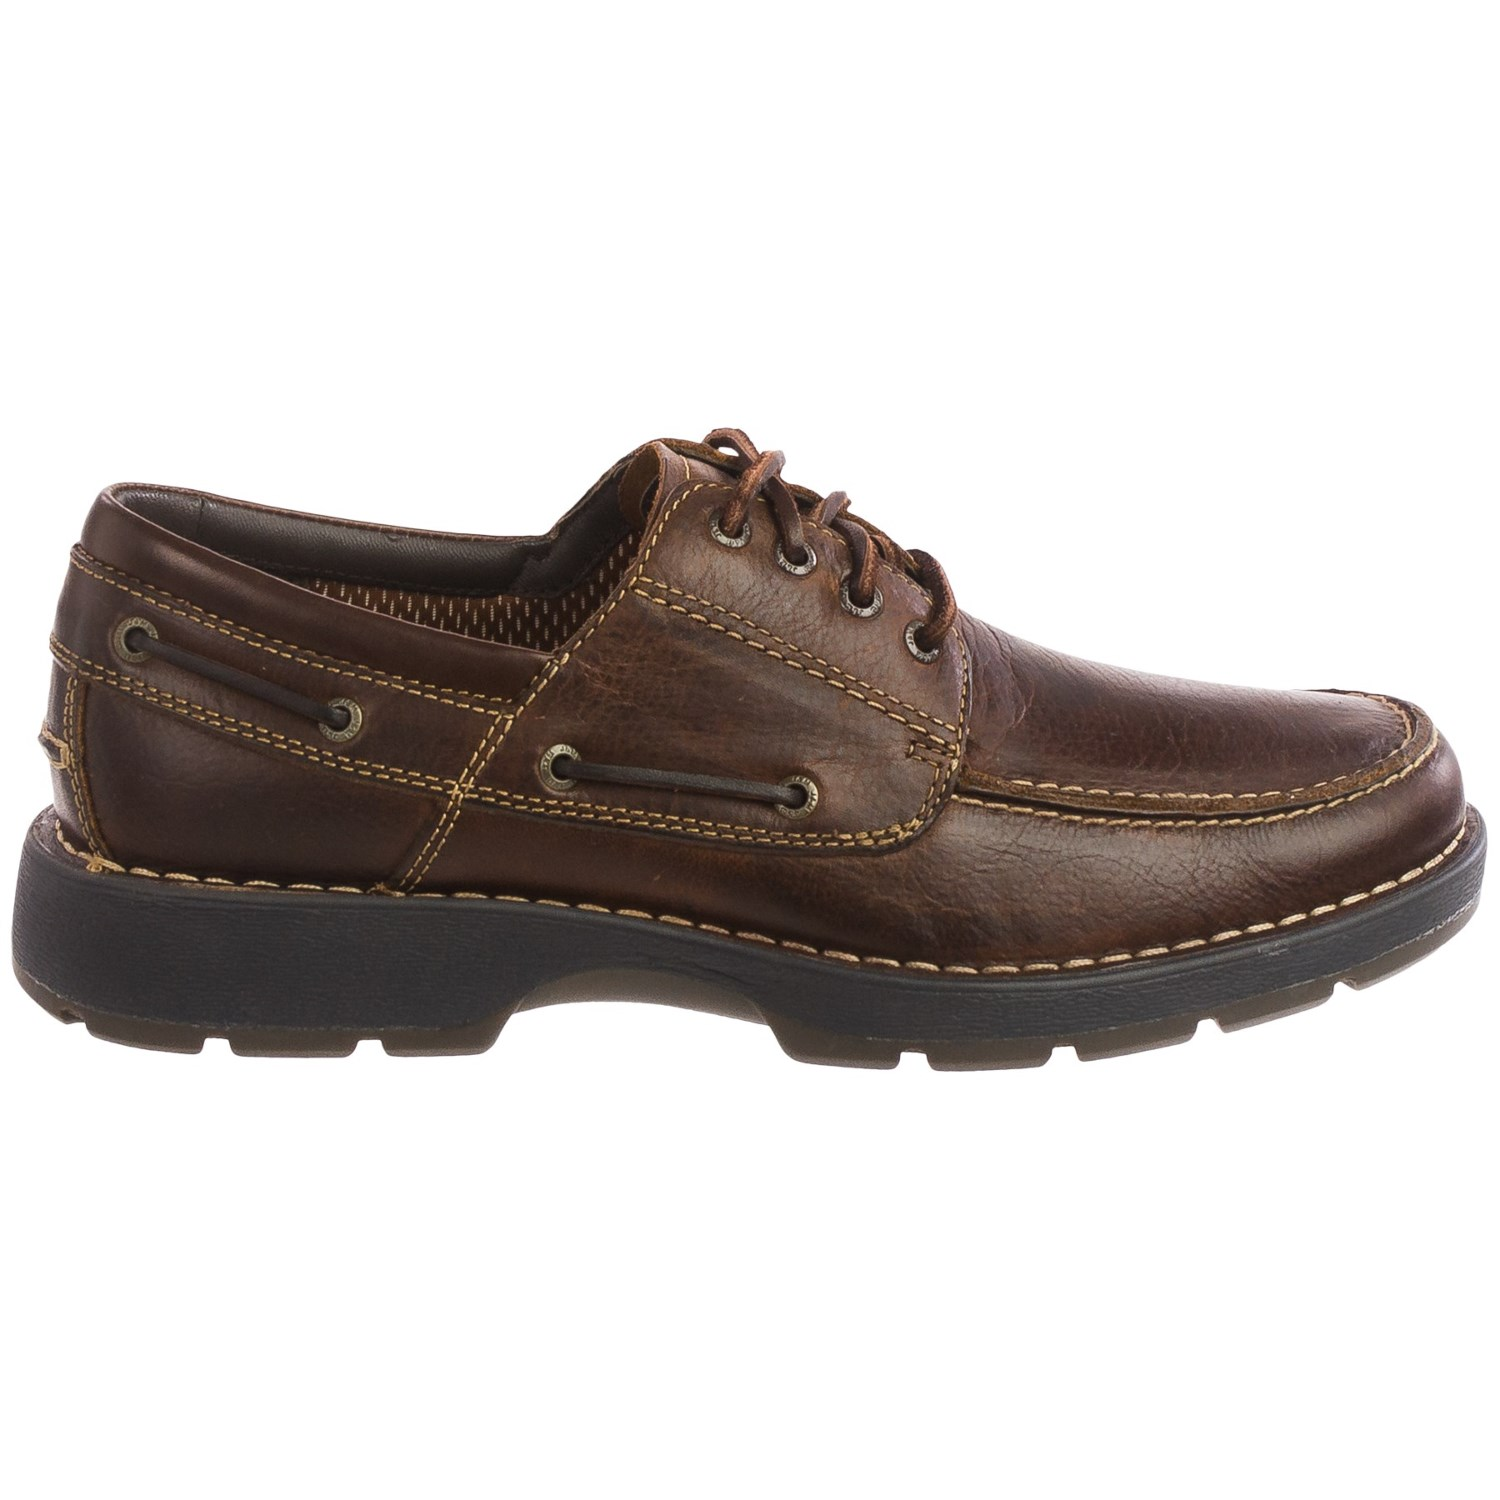 Men Shoes Online Store Images Tattoos With Kids Names For